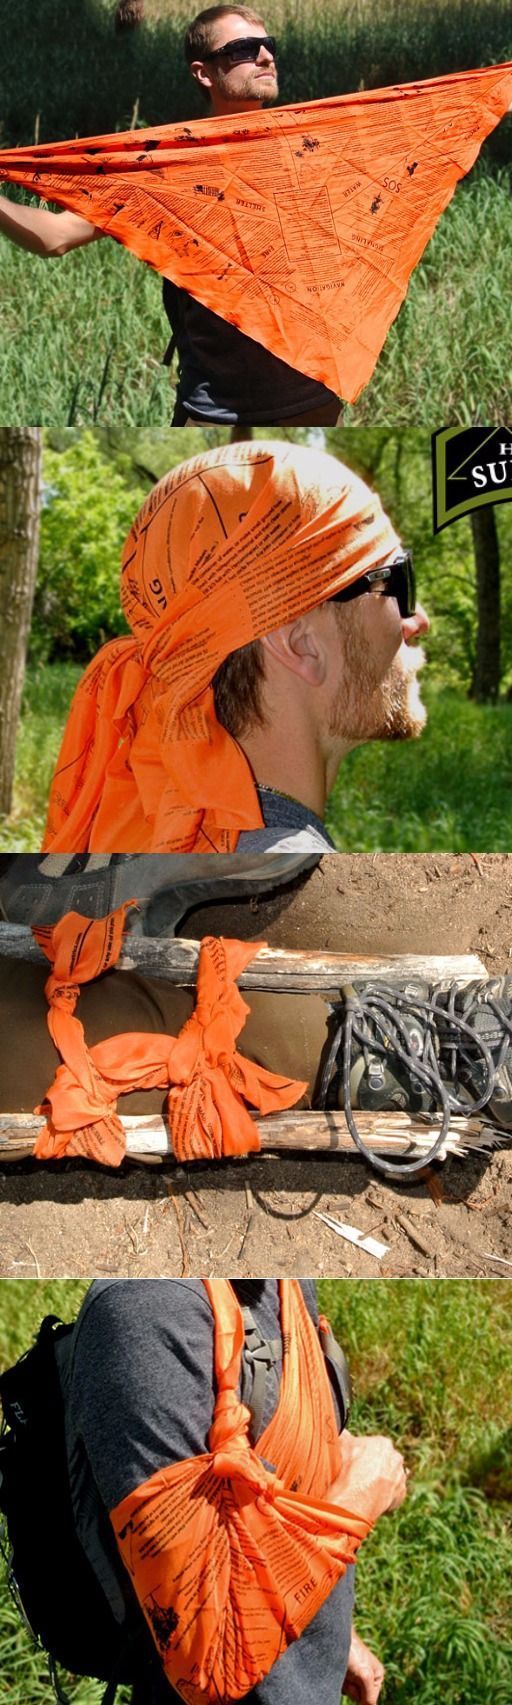 Best 25 Survival Backpack Ideas Only On Pinterest